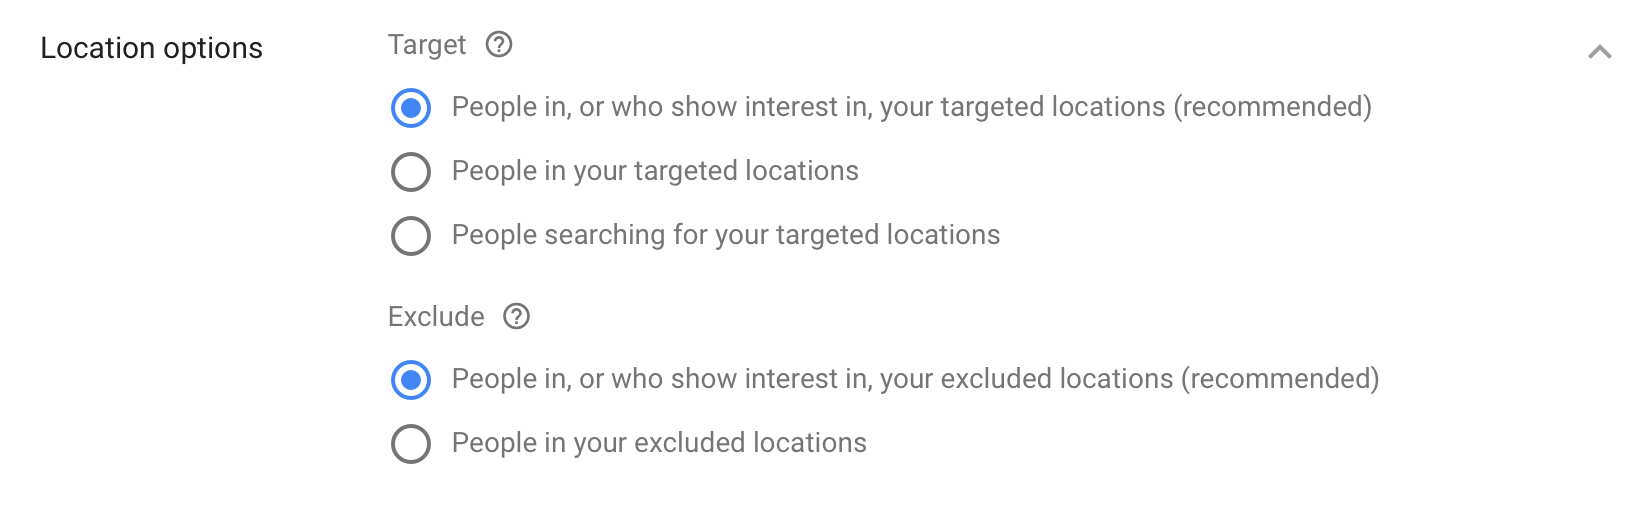 Location Targeting Options